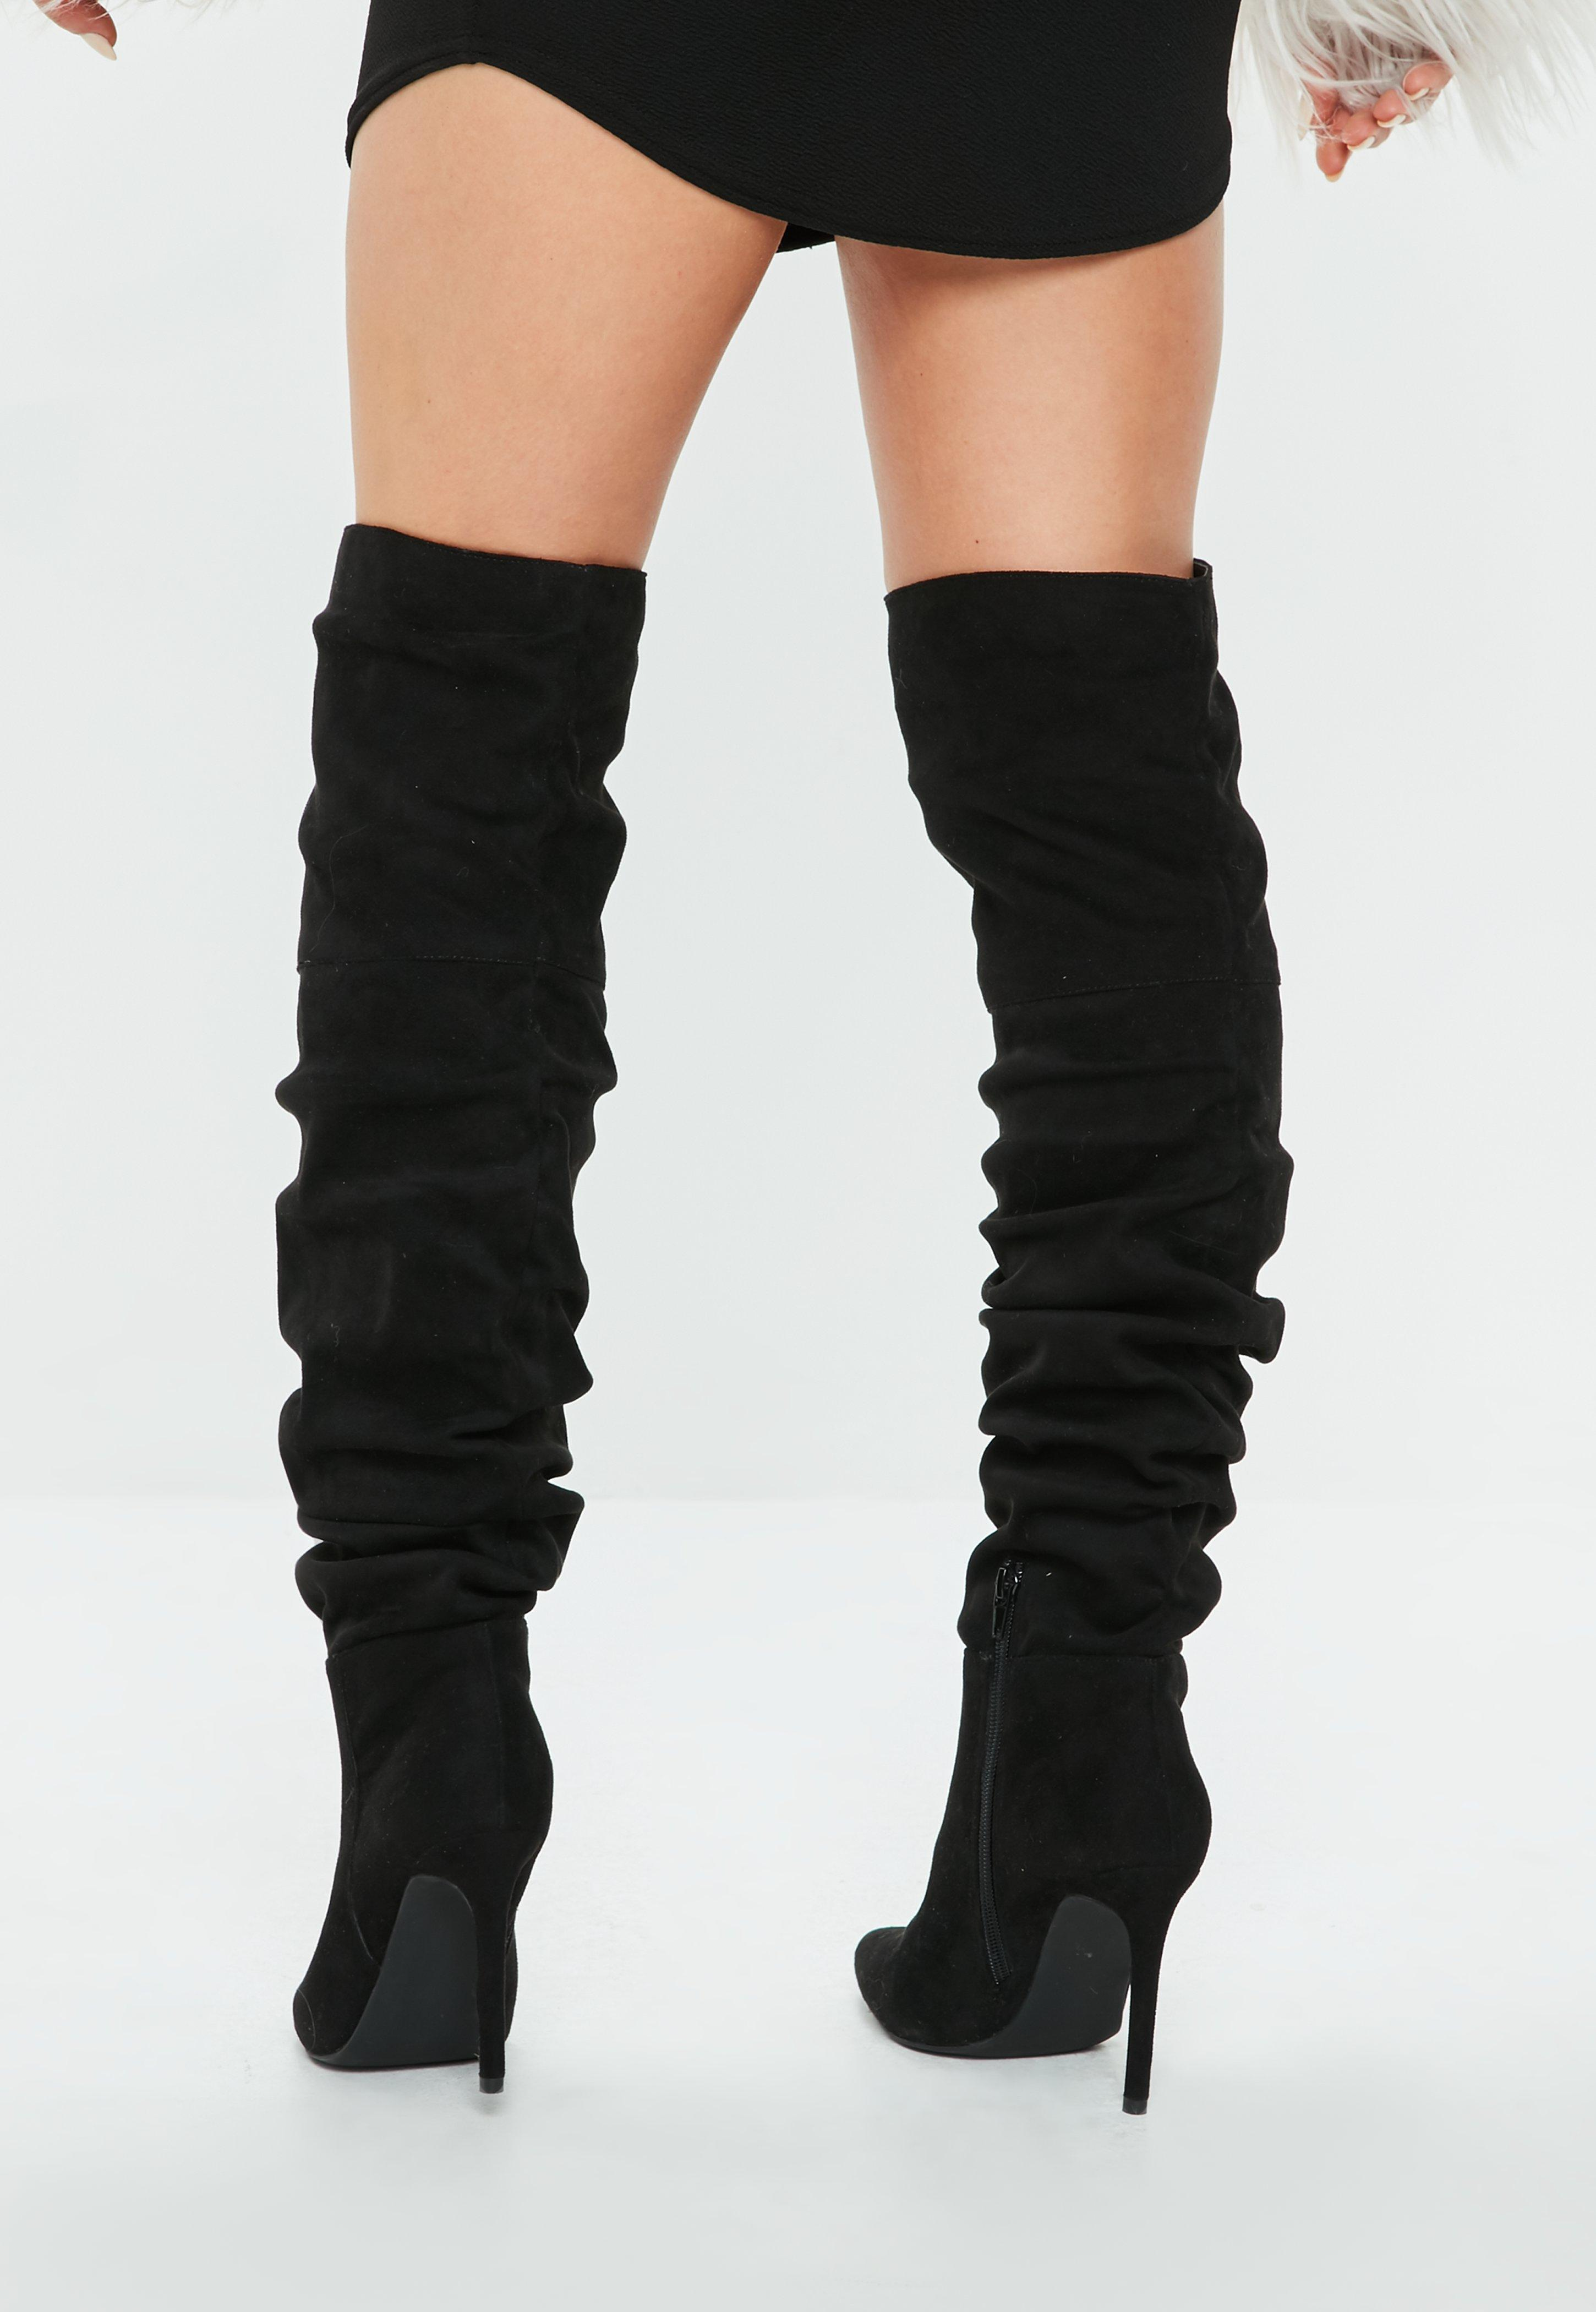 cdf56be570a2 Missguided Black Ruched Over The Knee Pointed Heeled Boots in Black ...